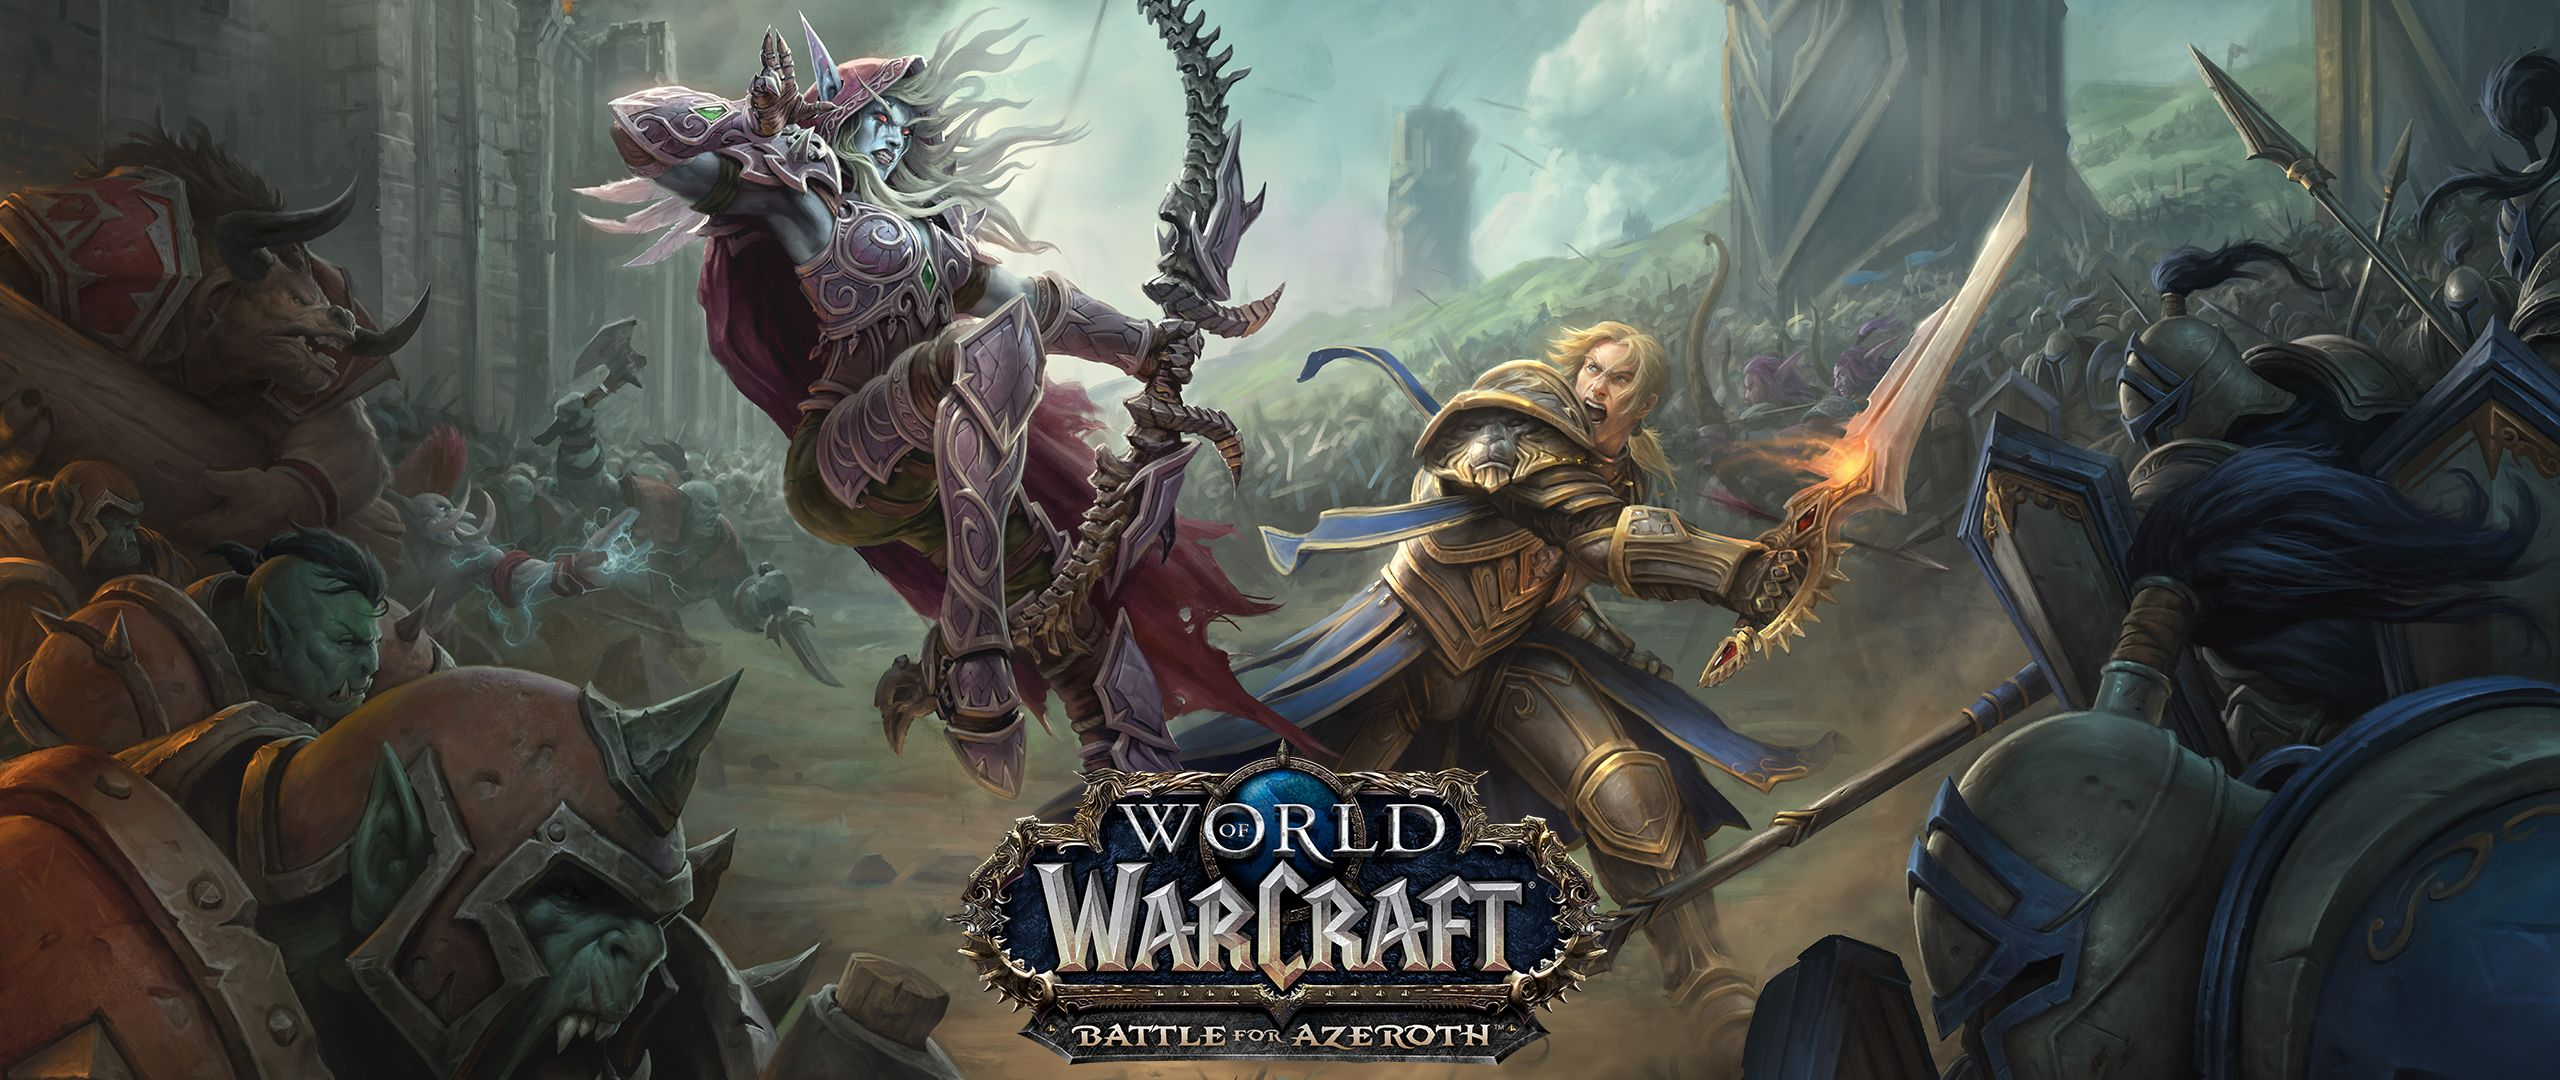 World of Warcraft: Battle for Azeroth (US) + LVL 110